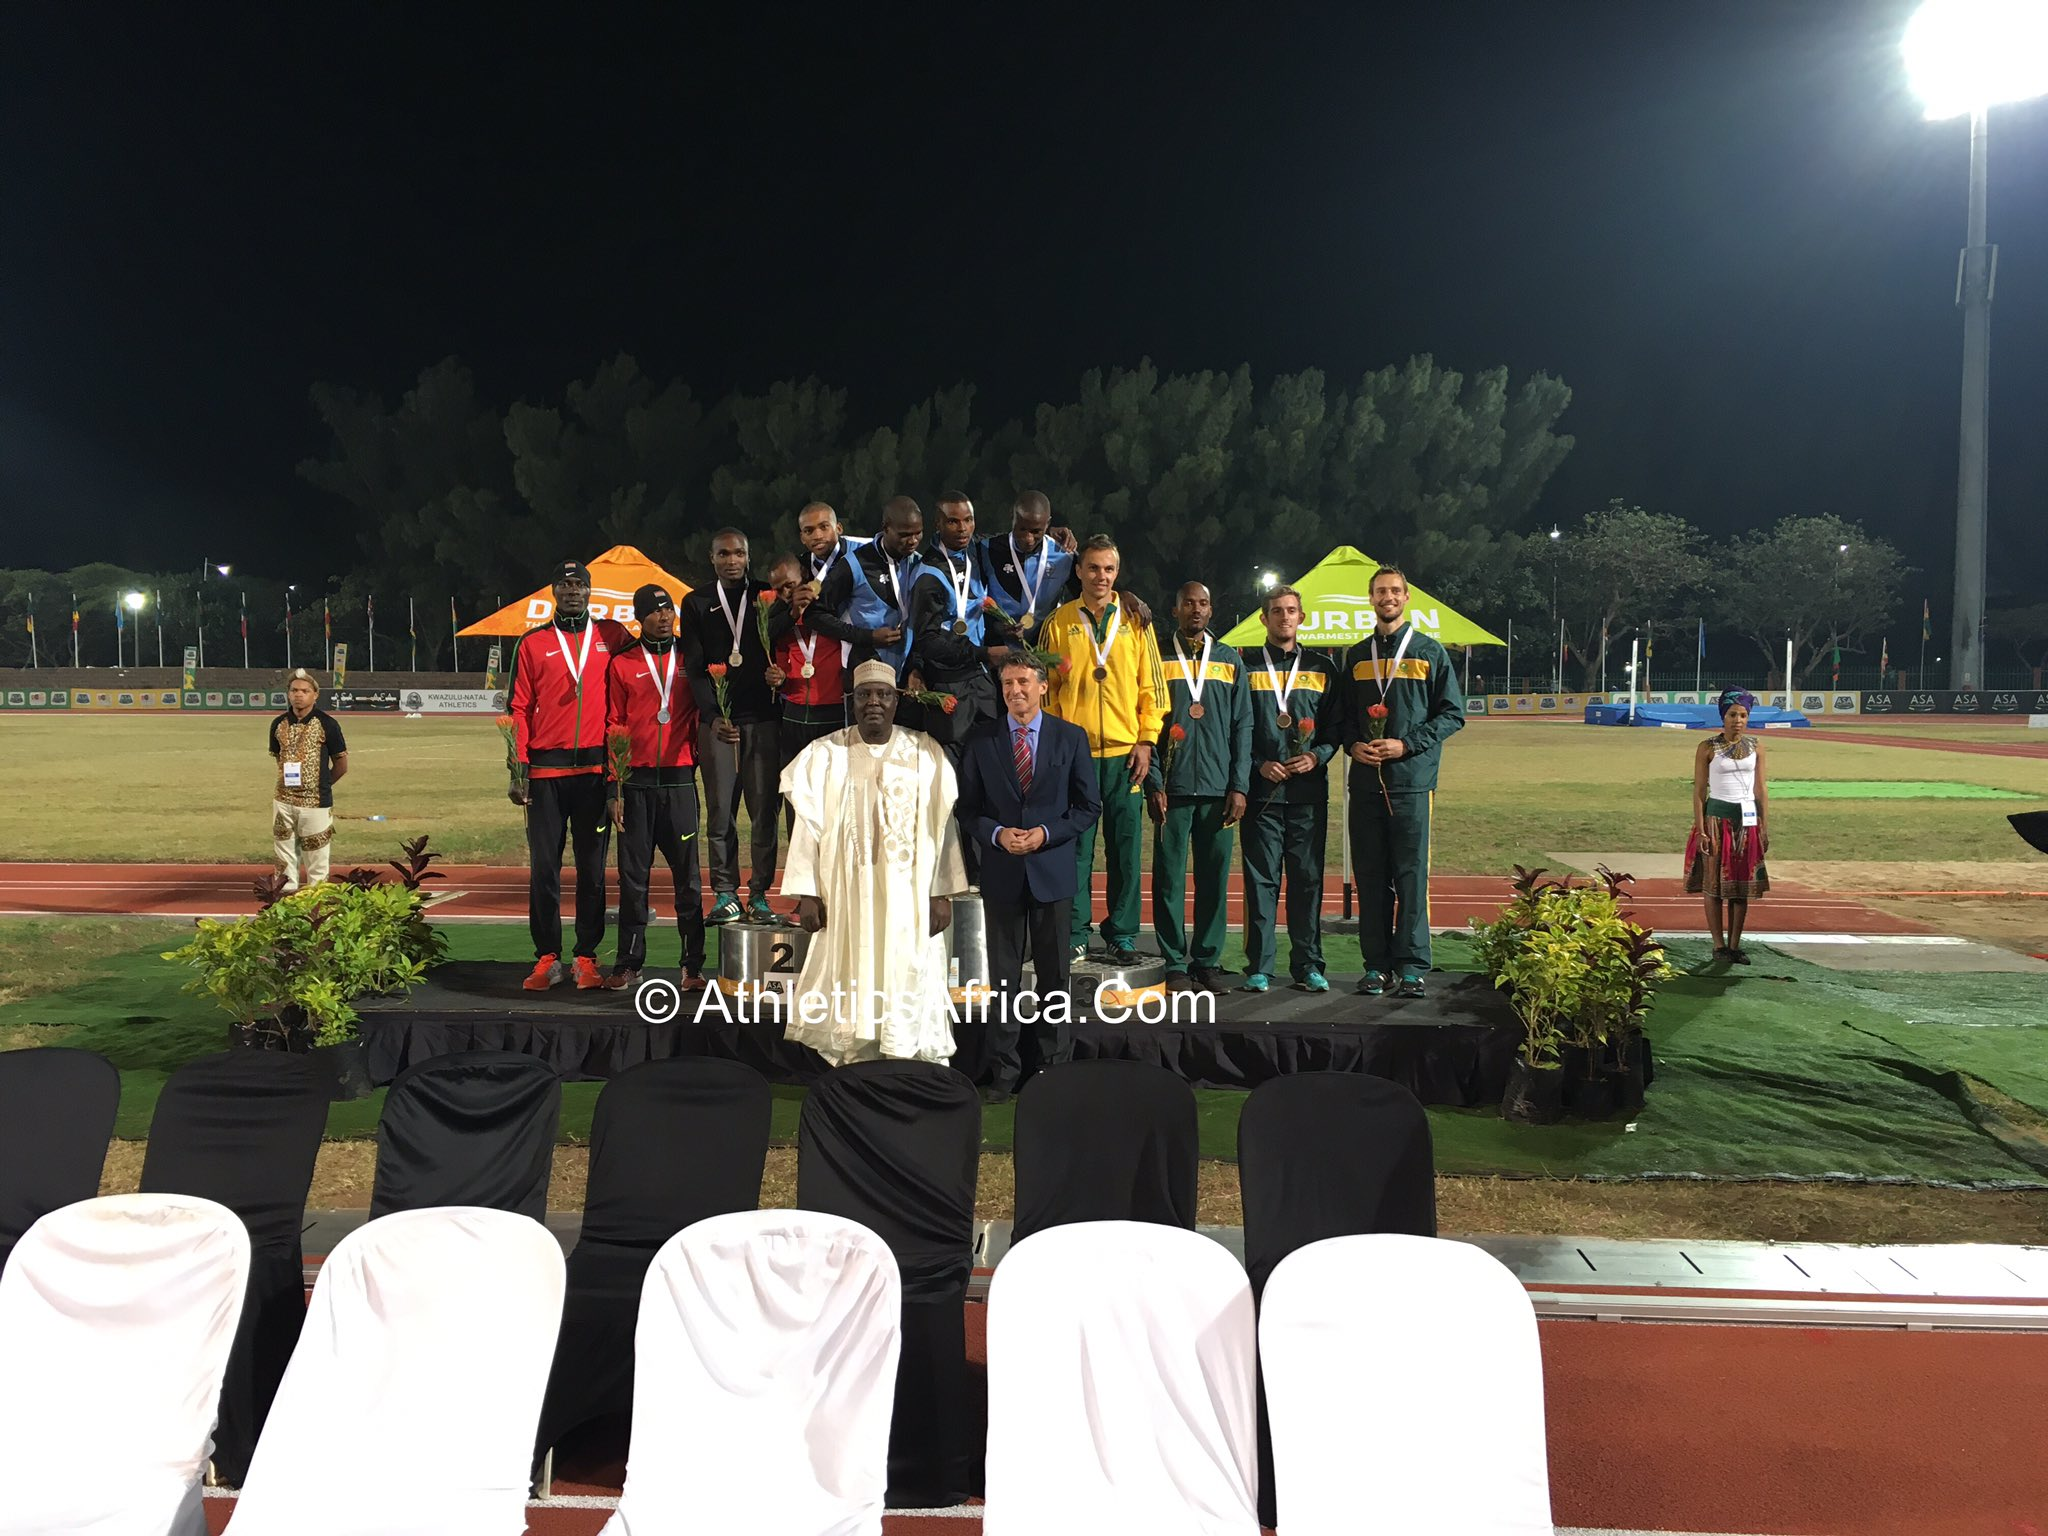 Medals presentation to the podium in the men's 4x400m Relay 🇰🇪🇧🇼🇿🇦 #AfricanChamps #Durban2016 #CAA2016 #Lagos2018 https://t.co/fI9dIY5yvn